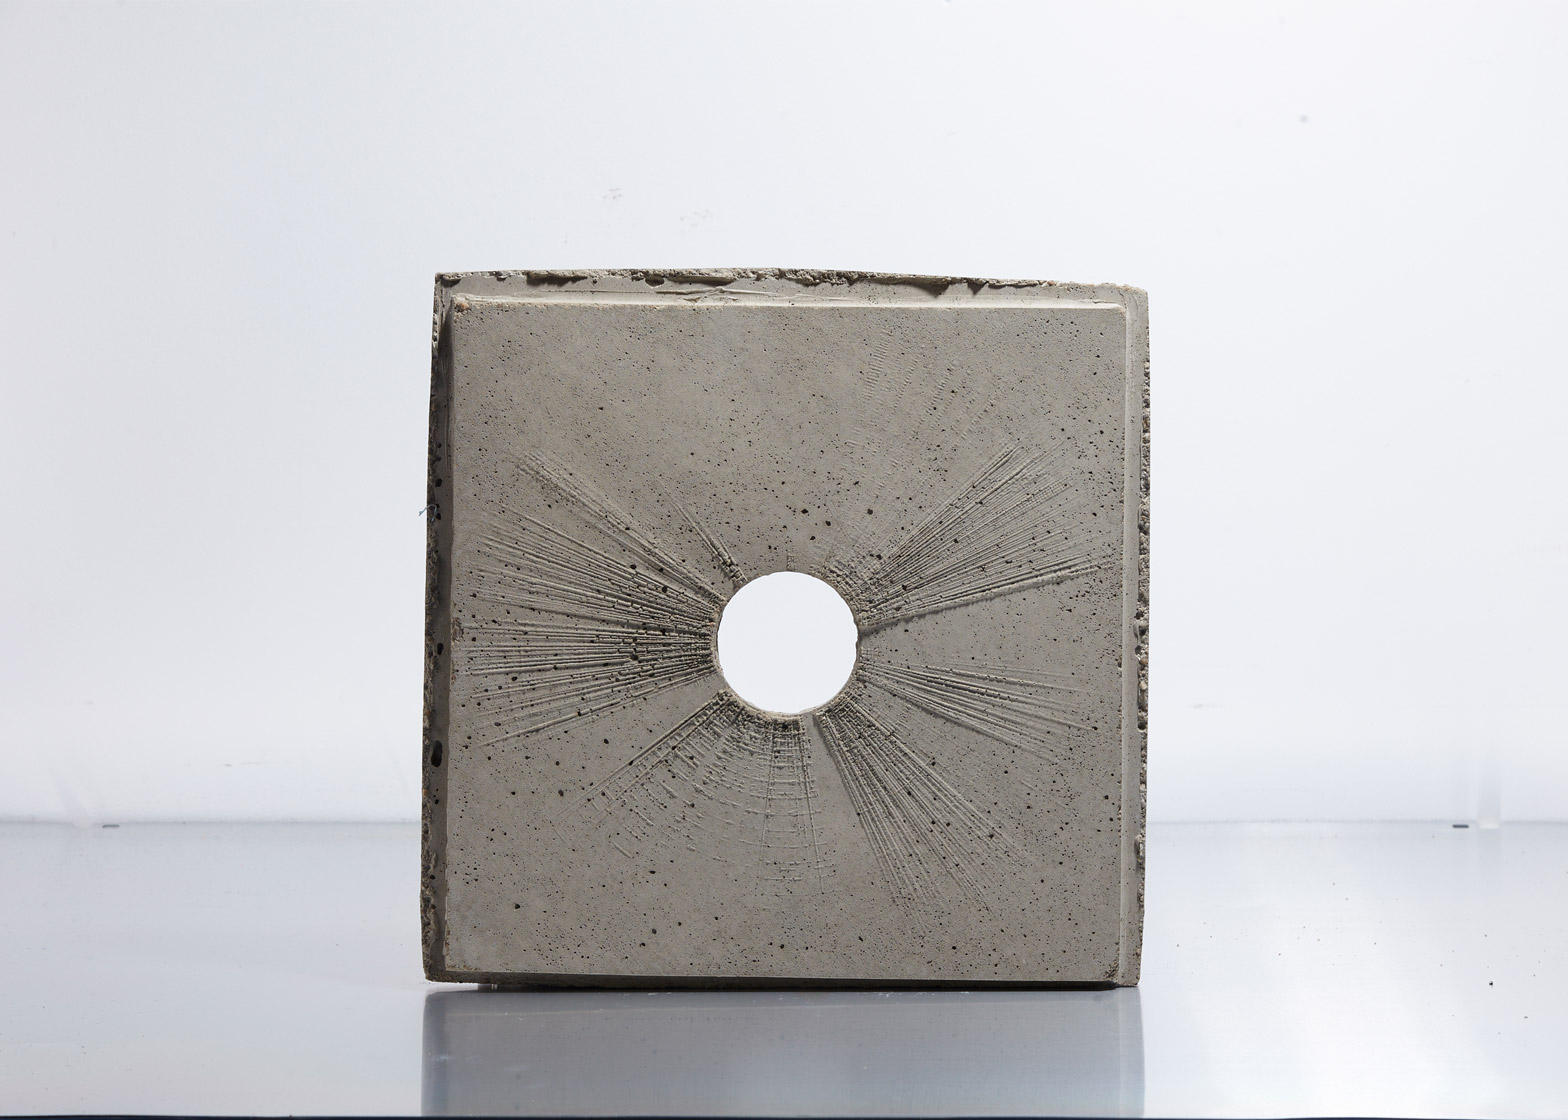 AntiVJ casts soundwaves in concrete for Ecume vinyl release